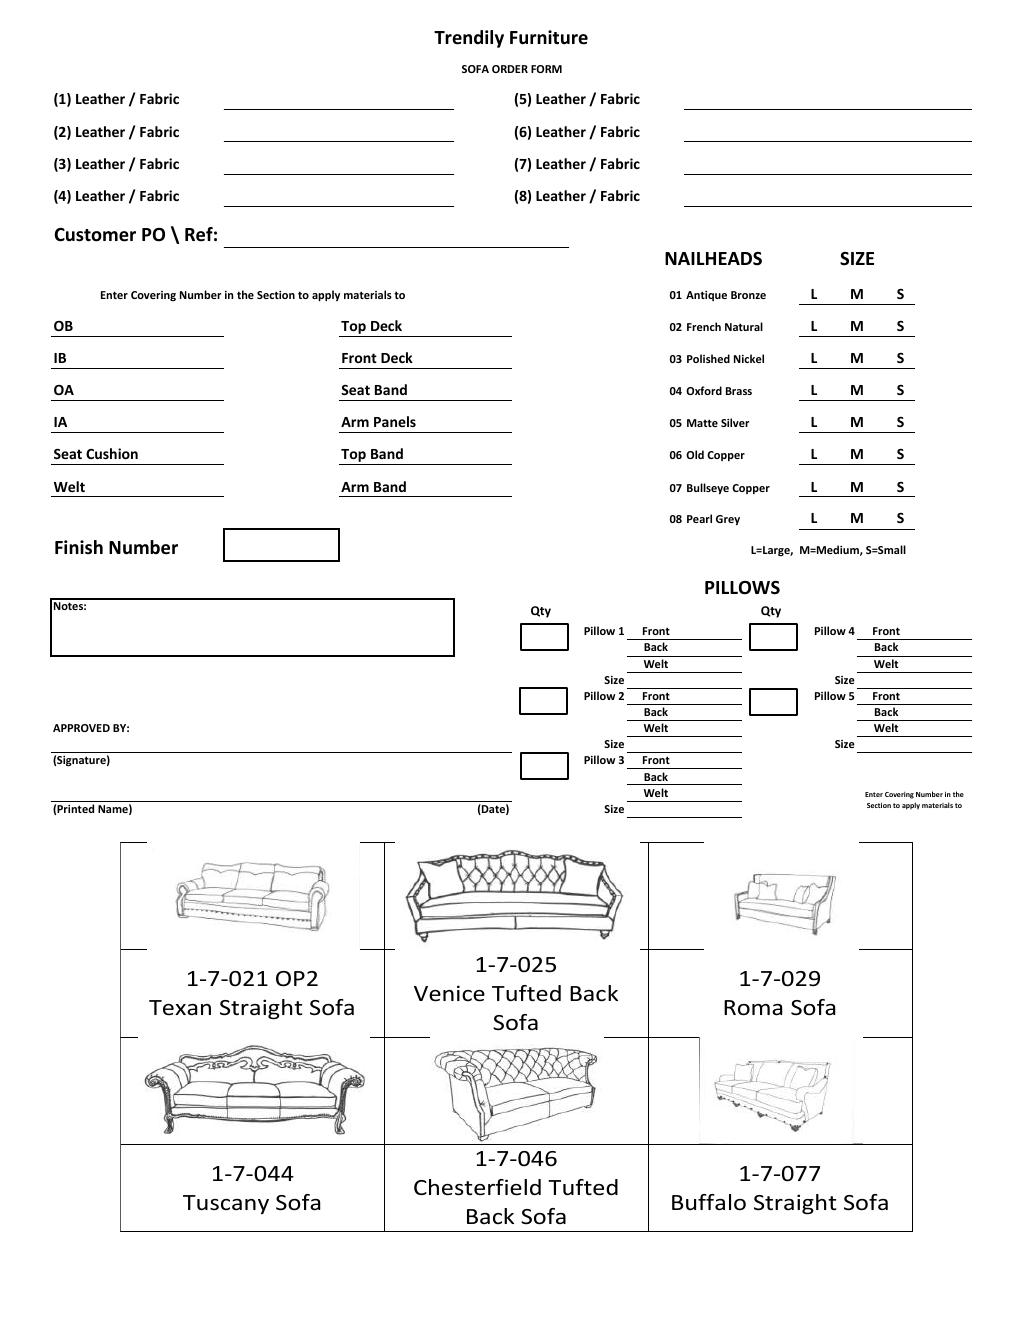 Order Forms | Trendily Home Collection